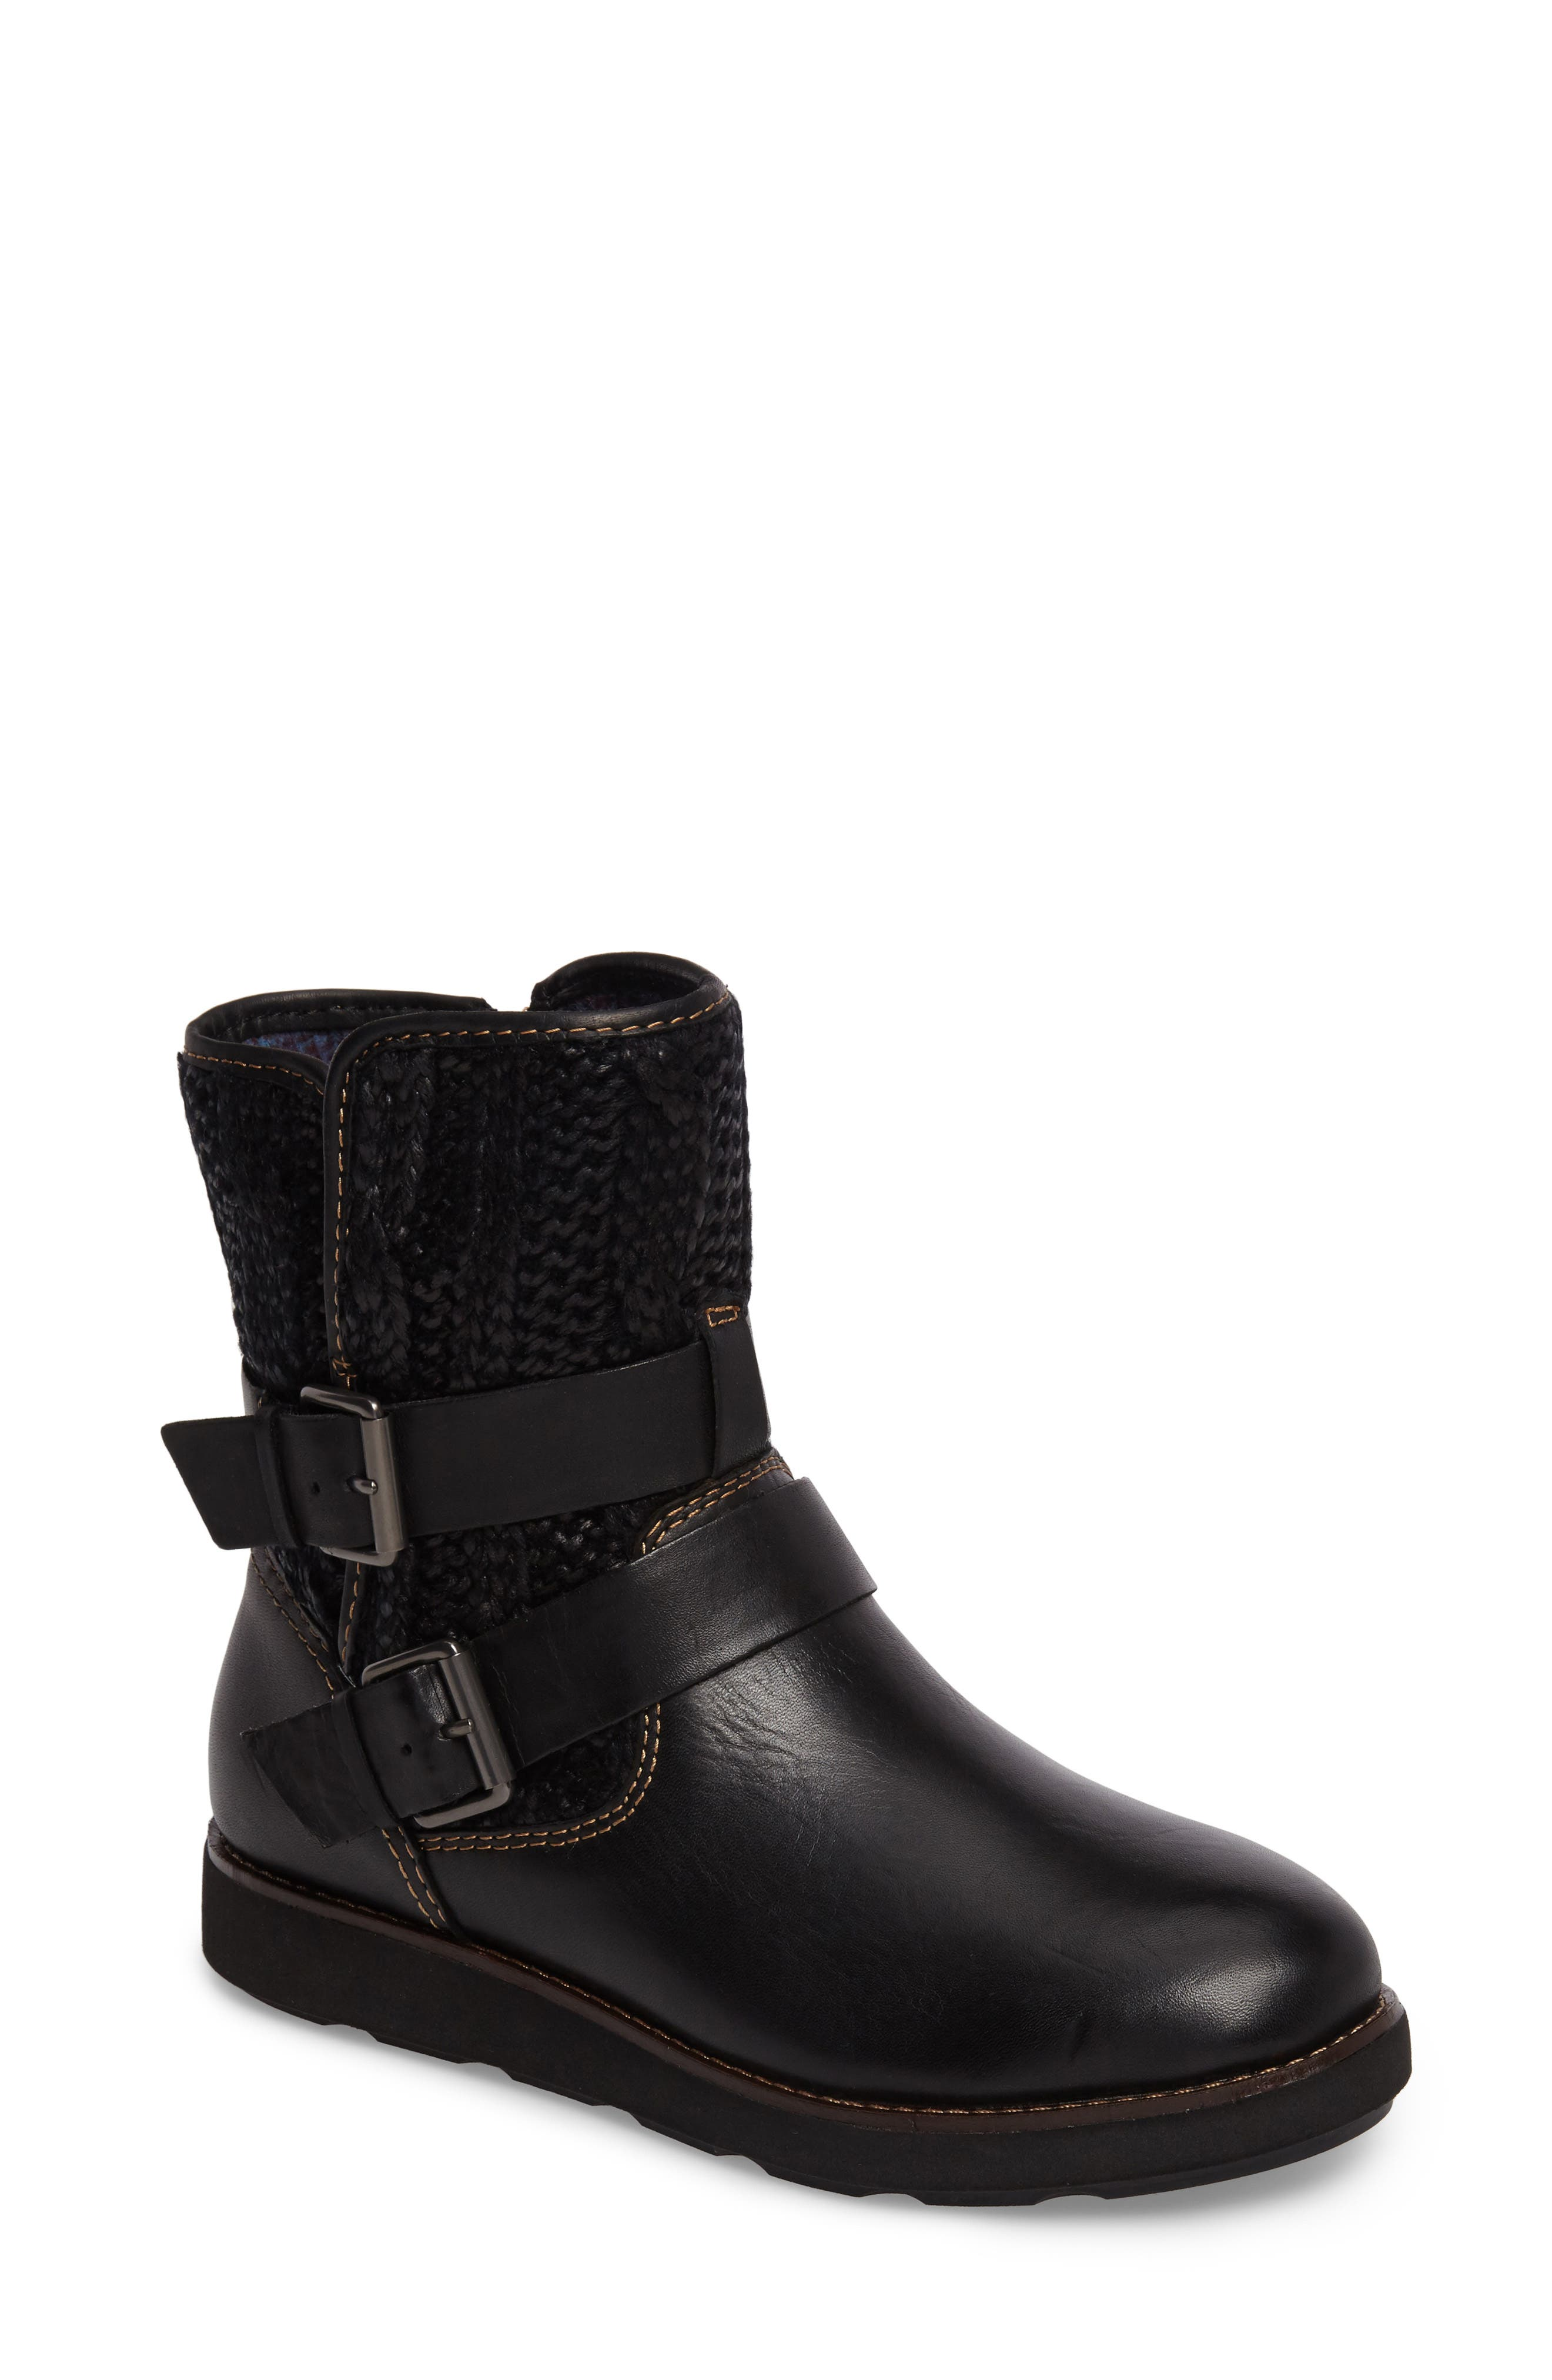 Nordic Boot,                             Main thumbnail 1, color,                             Black Leather